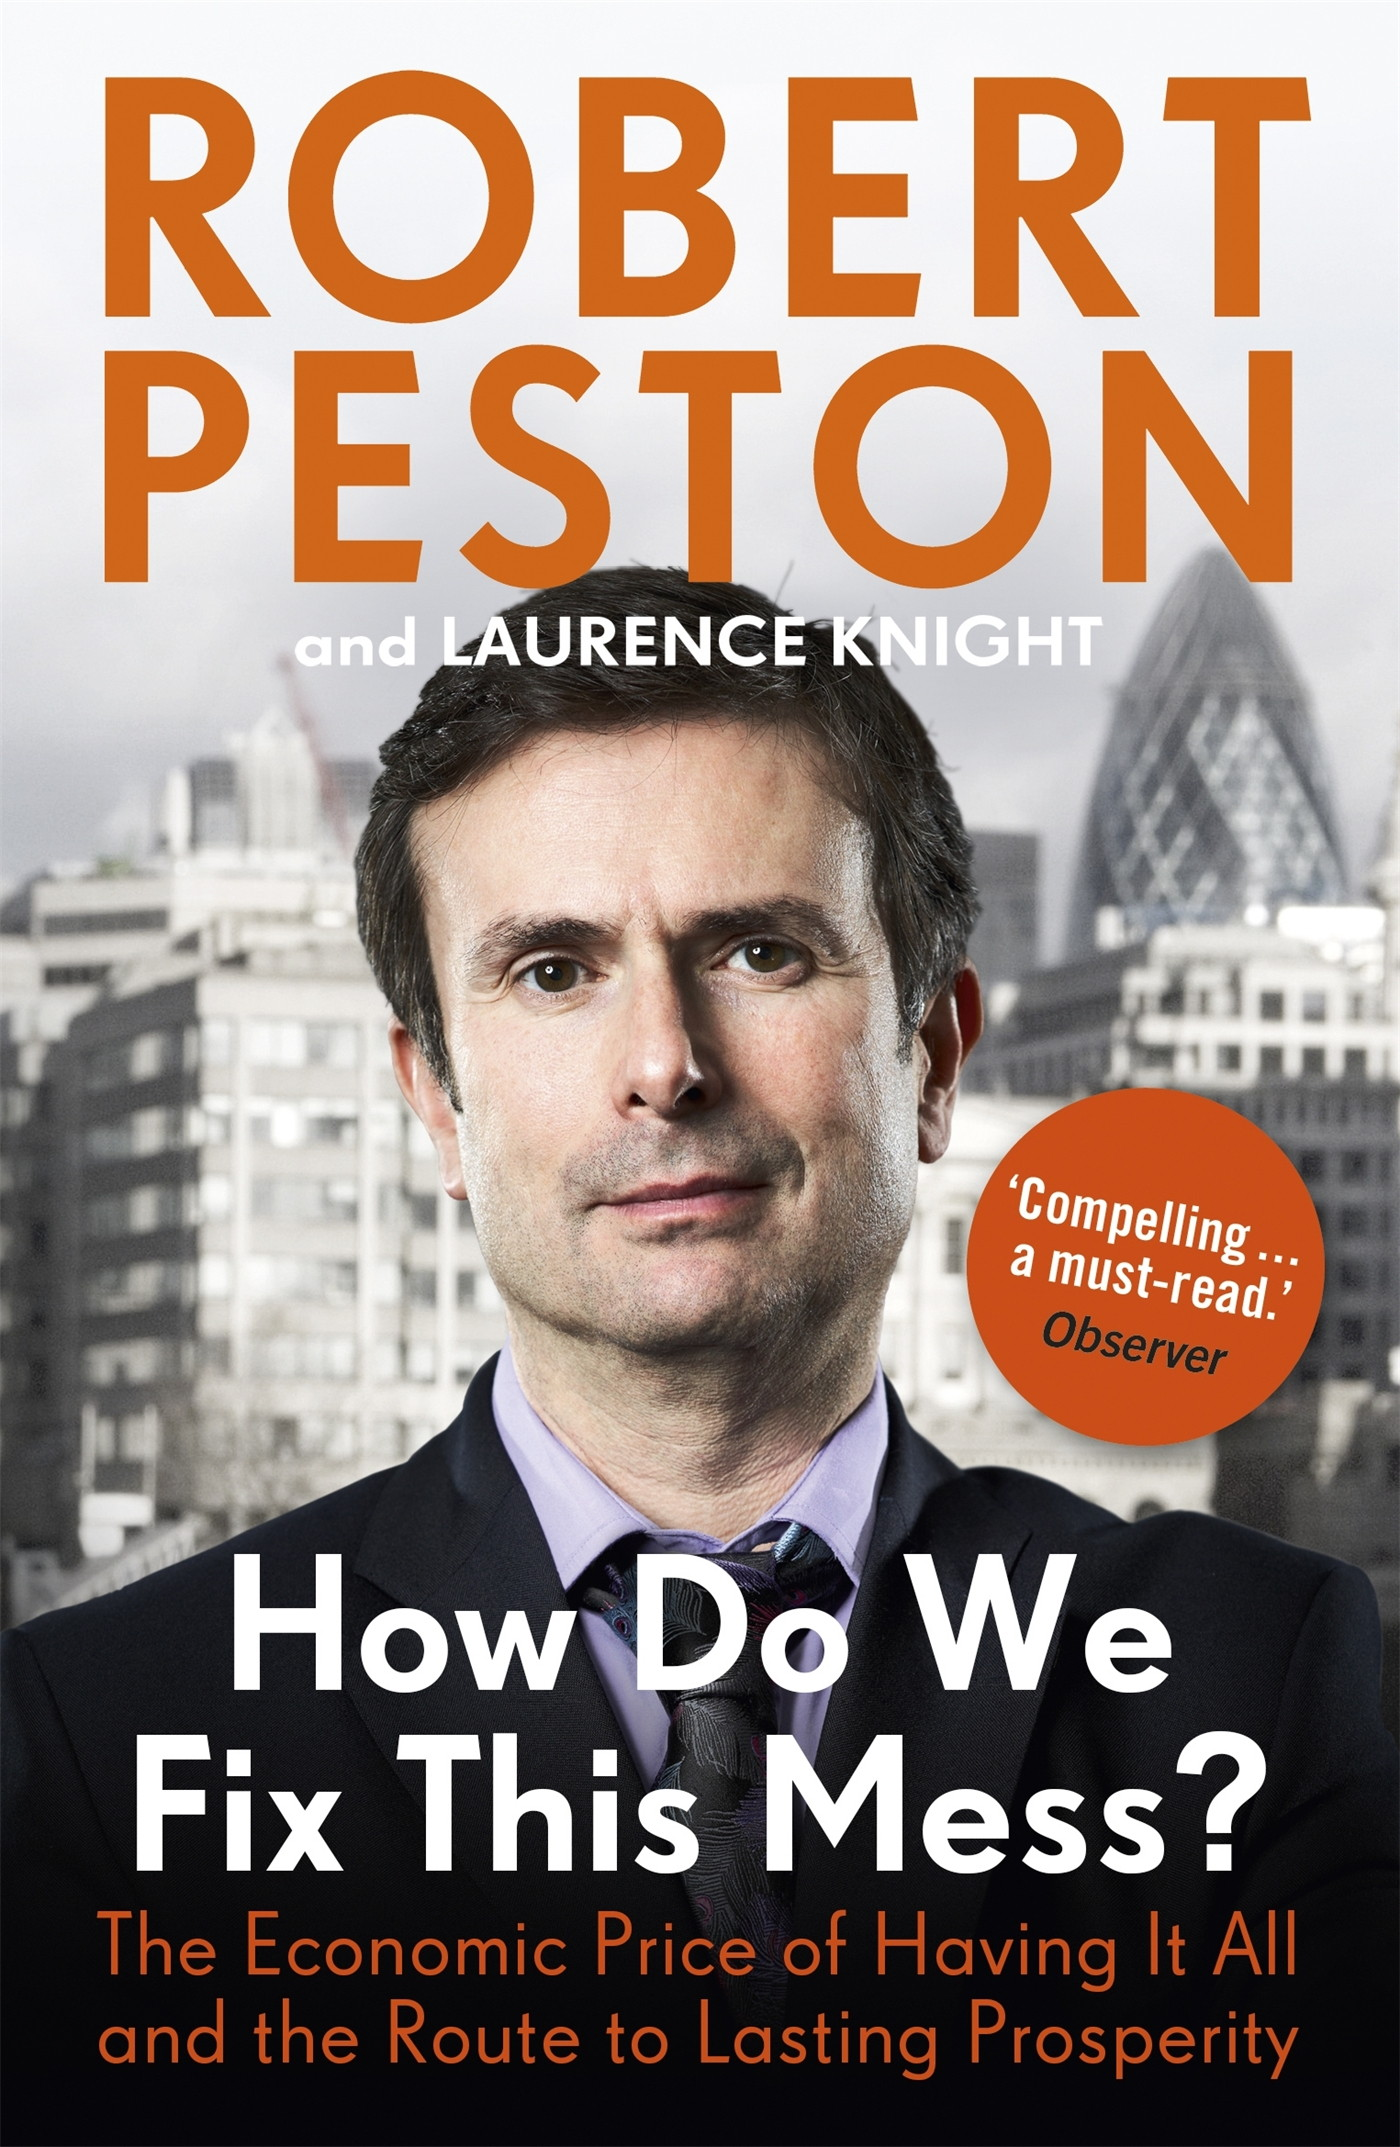 Download Ebook How Do We Fix This Mess? The Economic Price of Having it all, and the Route to Lasting Prosperity by Robert Peston Pdf